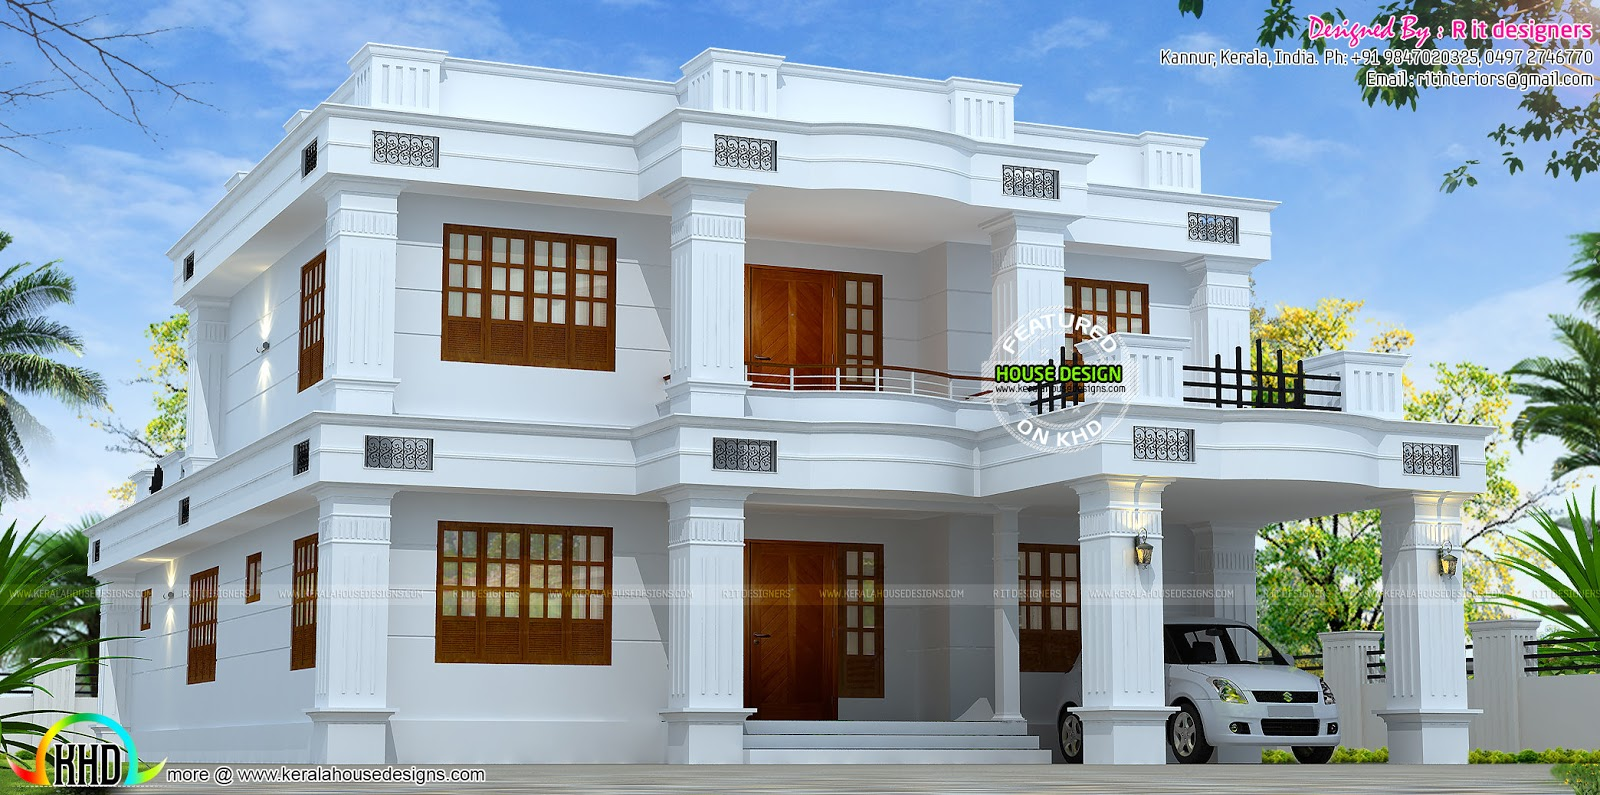 February 2016 kerala home design and floor plans for Kerala home designs com